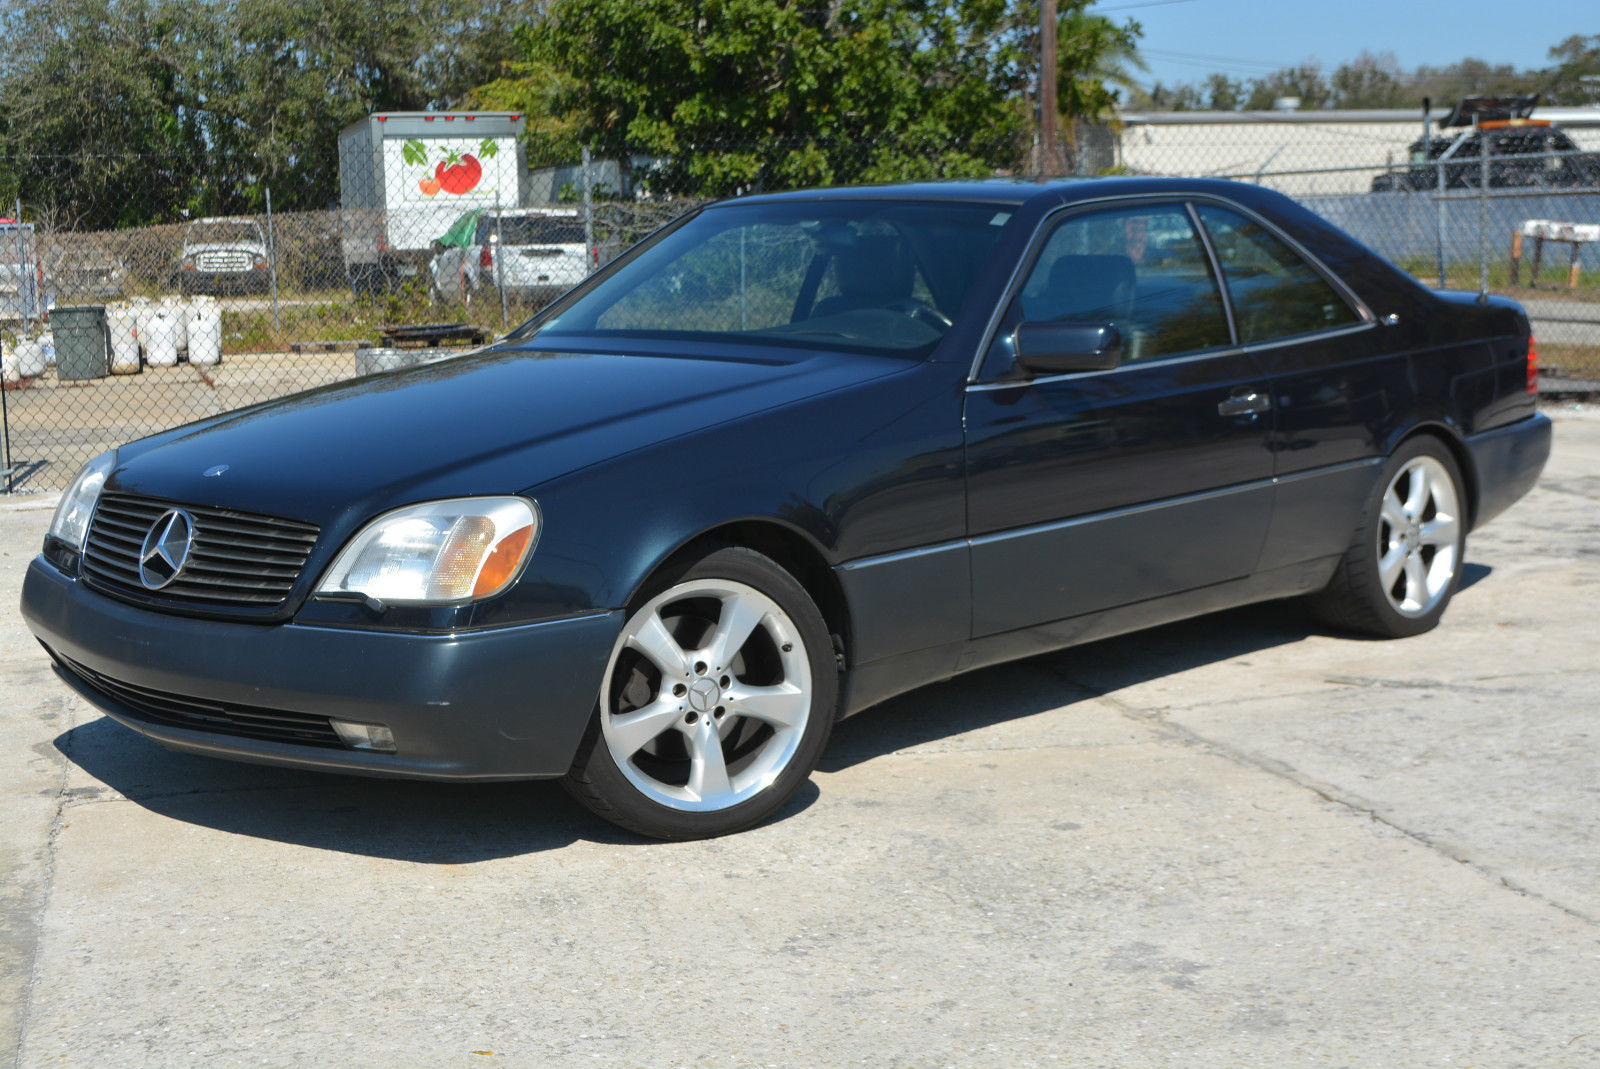 1996 mercedes benz s600 coupe 2 door 6 0l for sale for Mercedes benz 2 door coupe for sale